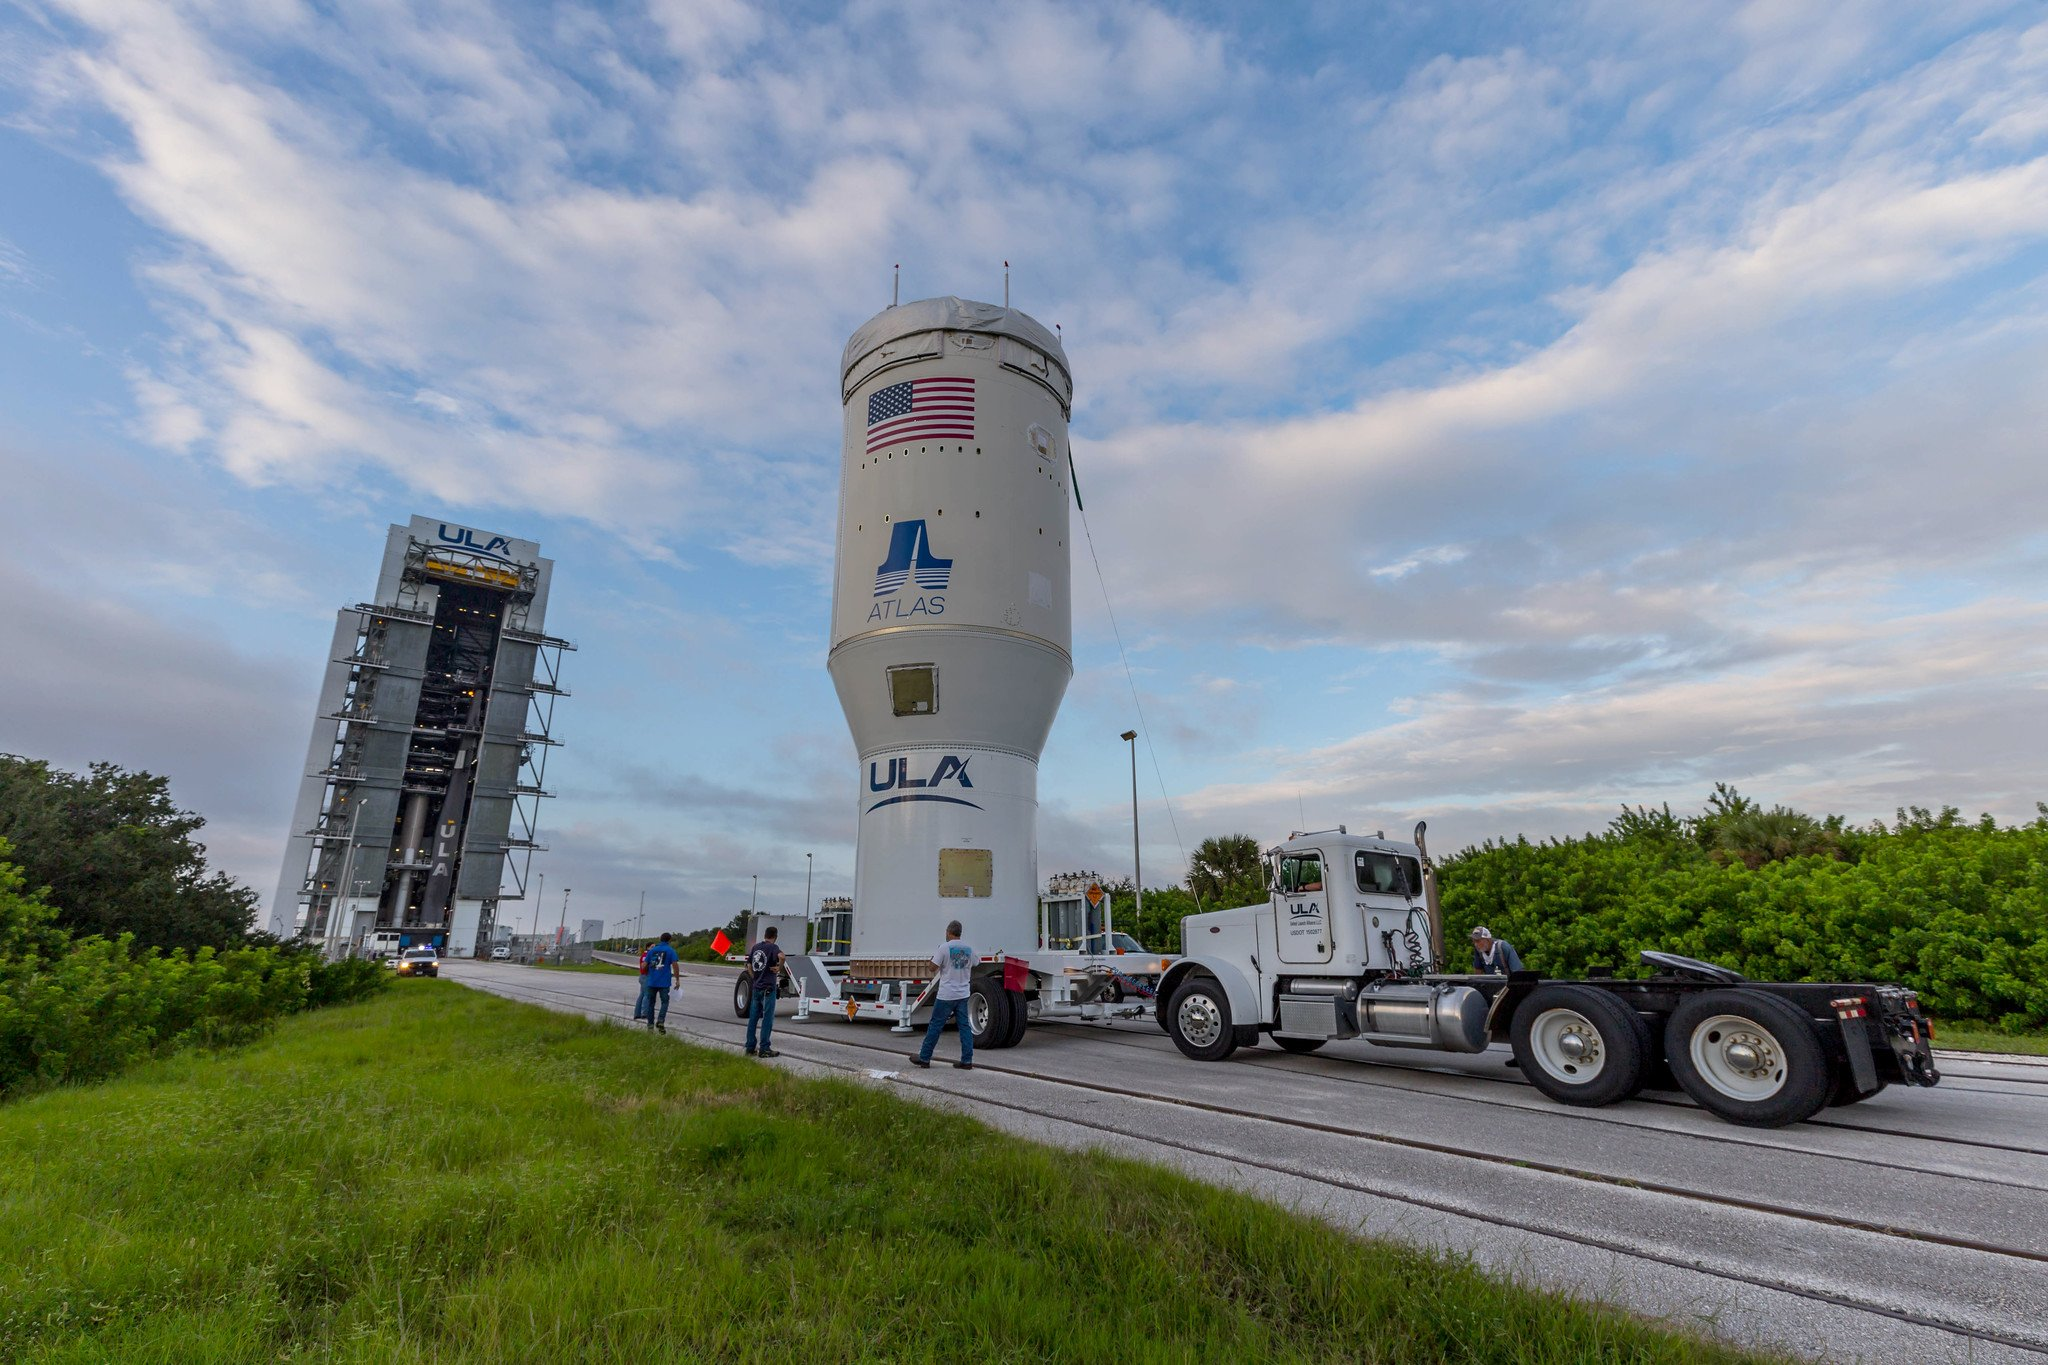 Centaur arrives at the VIF. Photo by United Launch Alliance